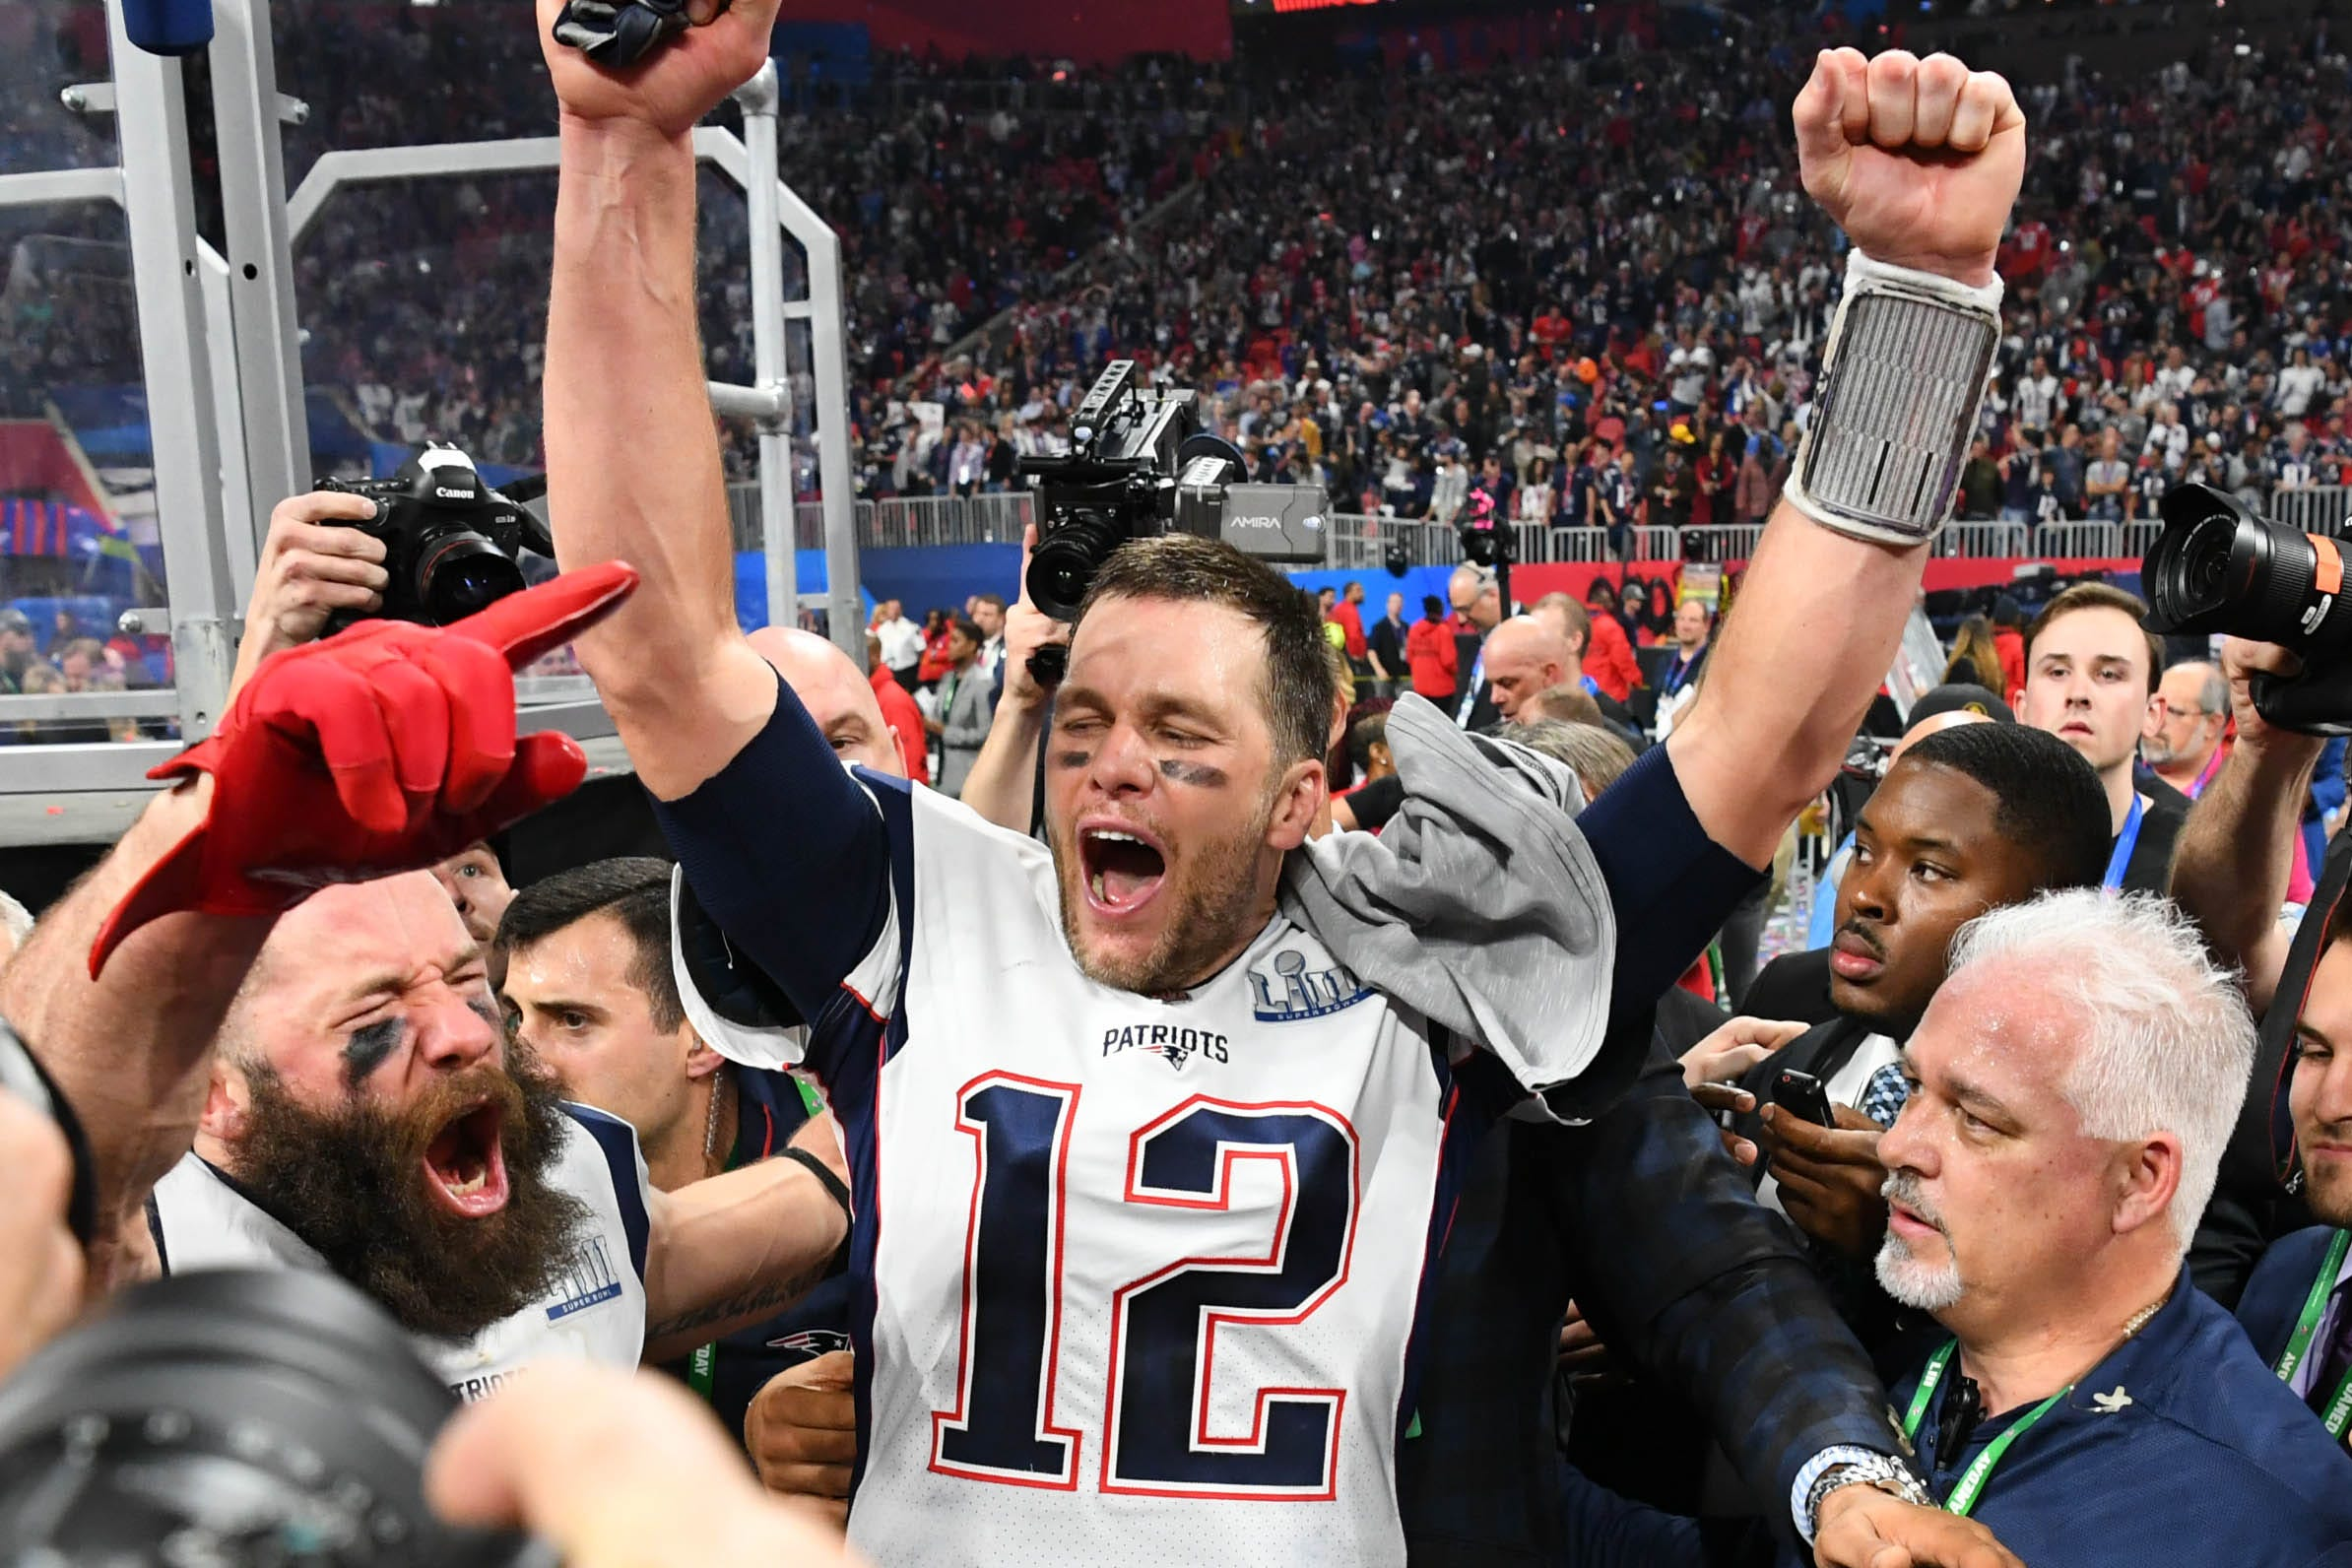 Opinion: Patriots cement status as NFL's greatest franchise with sixth Super Bowl win